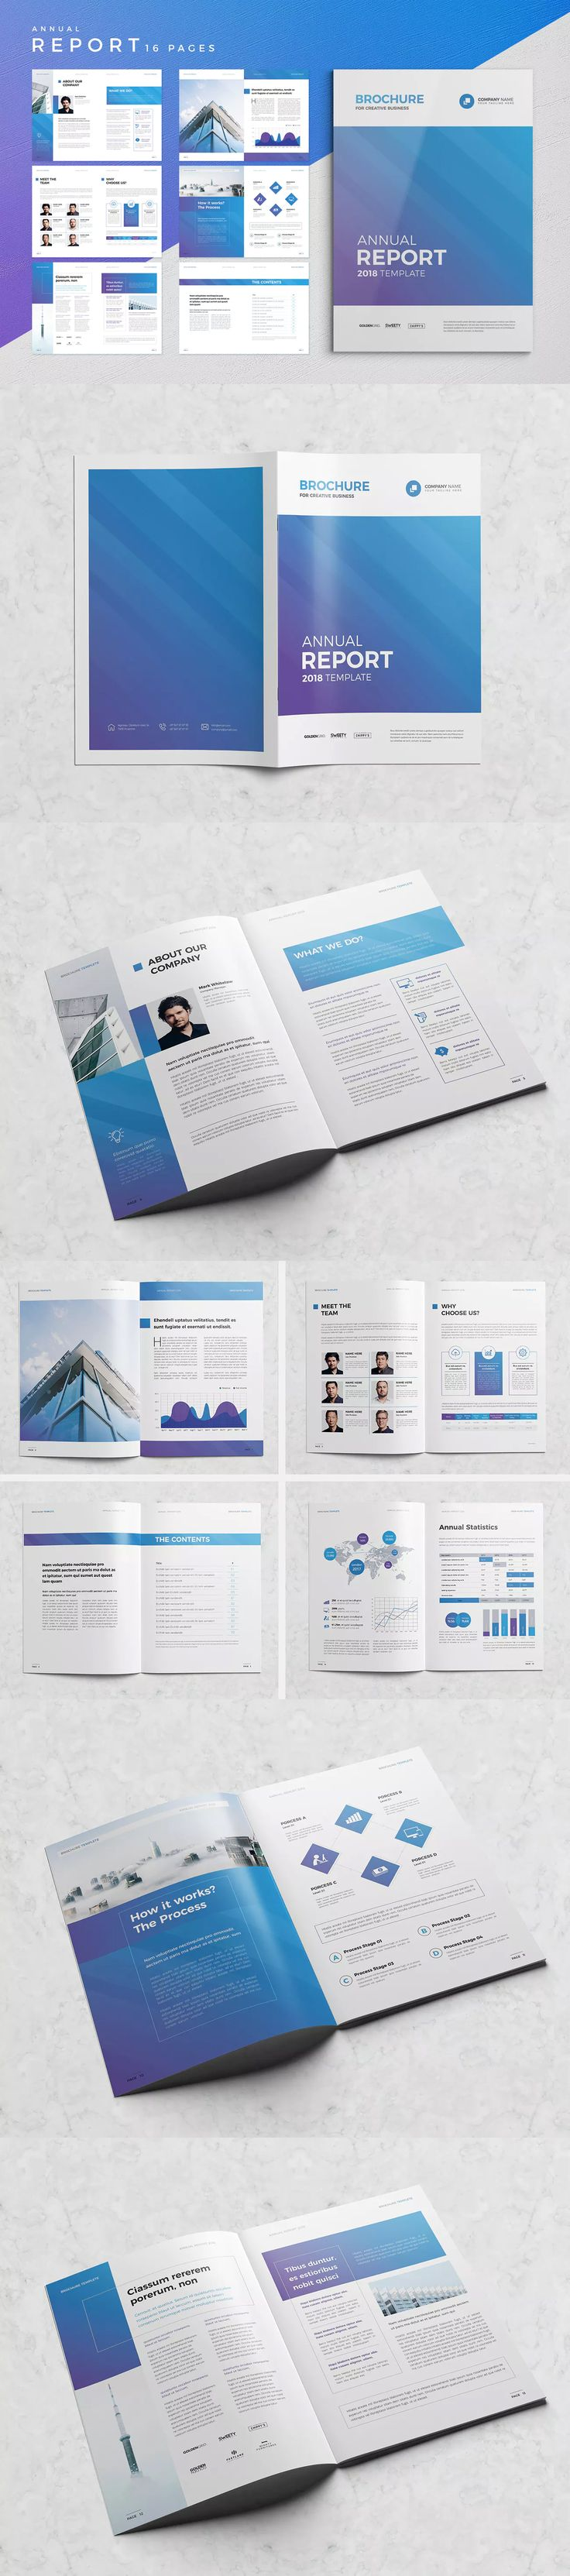 65 best Annual Report Templates images on Pinterest